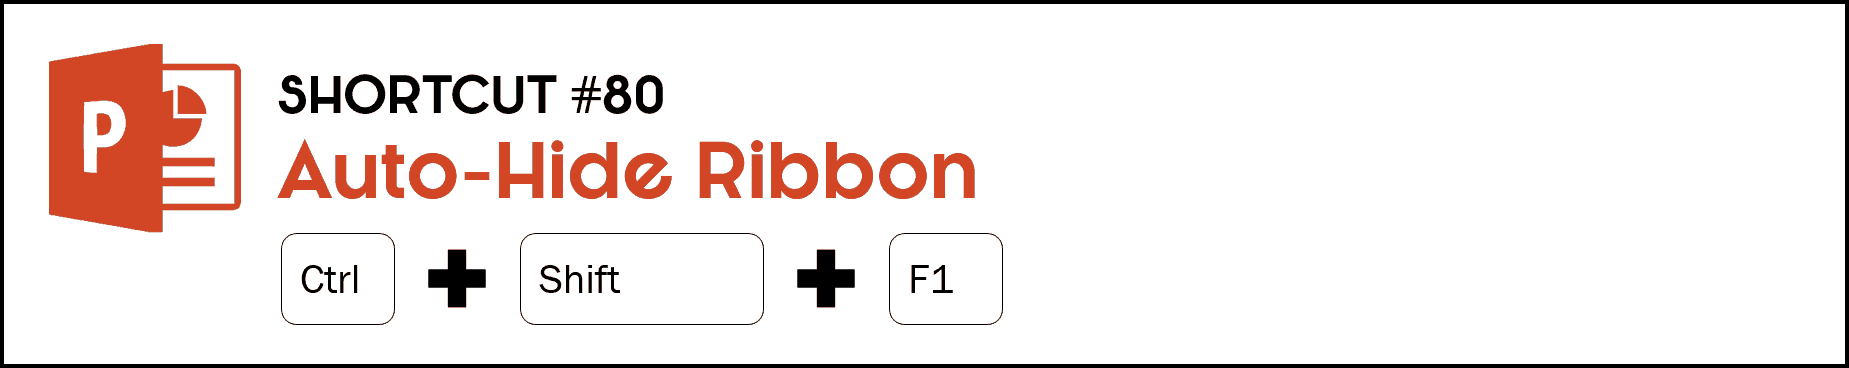 To auto hide your Ribbon in PowerPoint, hit the Control plus Shift plus F1 keys on your keyboard